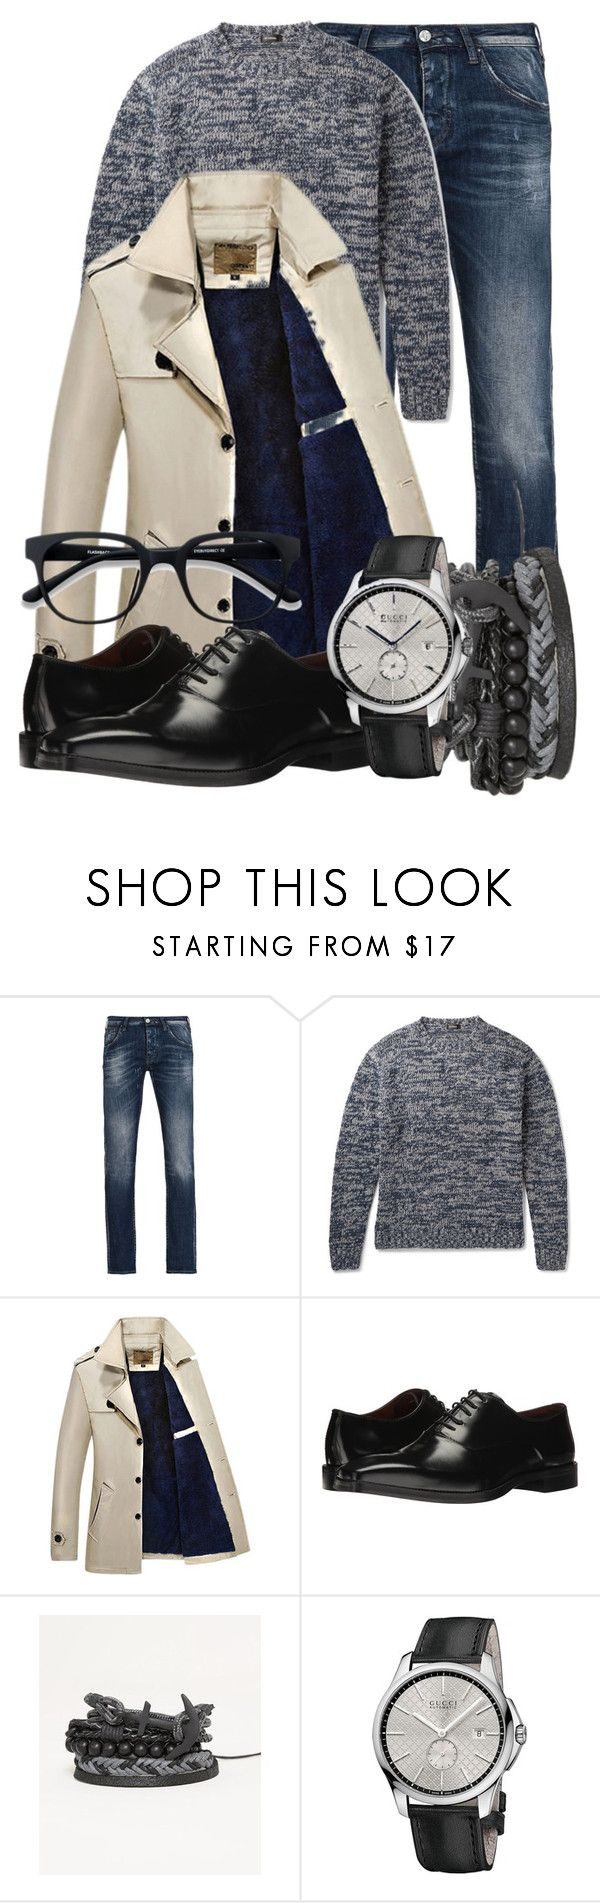 """Cold guy"" by marooninmelbourne ❤ liked on Polyvore featuring Armani Jeans, Jil Sander, Massimo Matteo, BKE, Gucci, EyeBuyDirect.com, men's fashion and menswear"